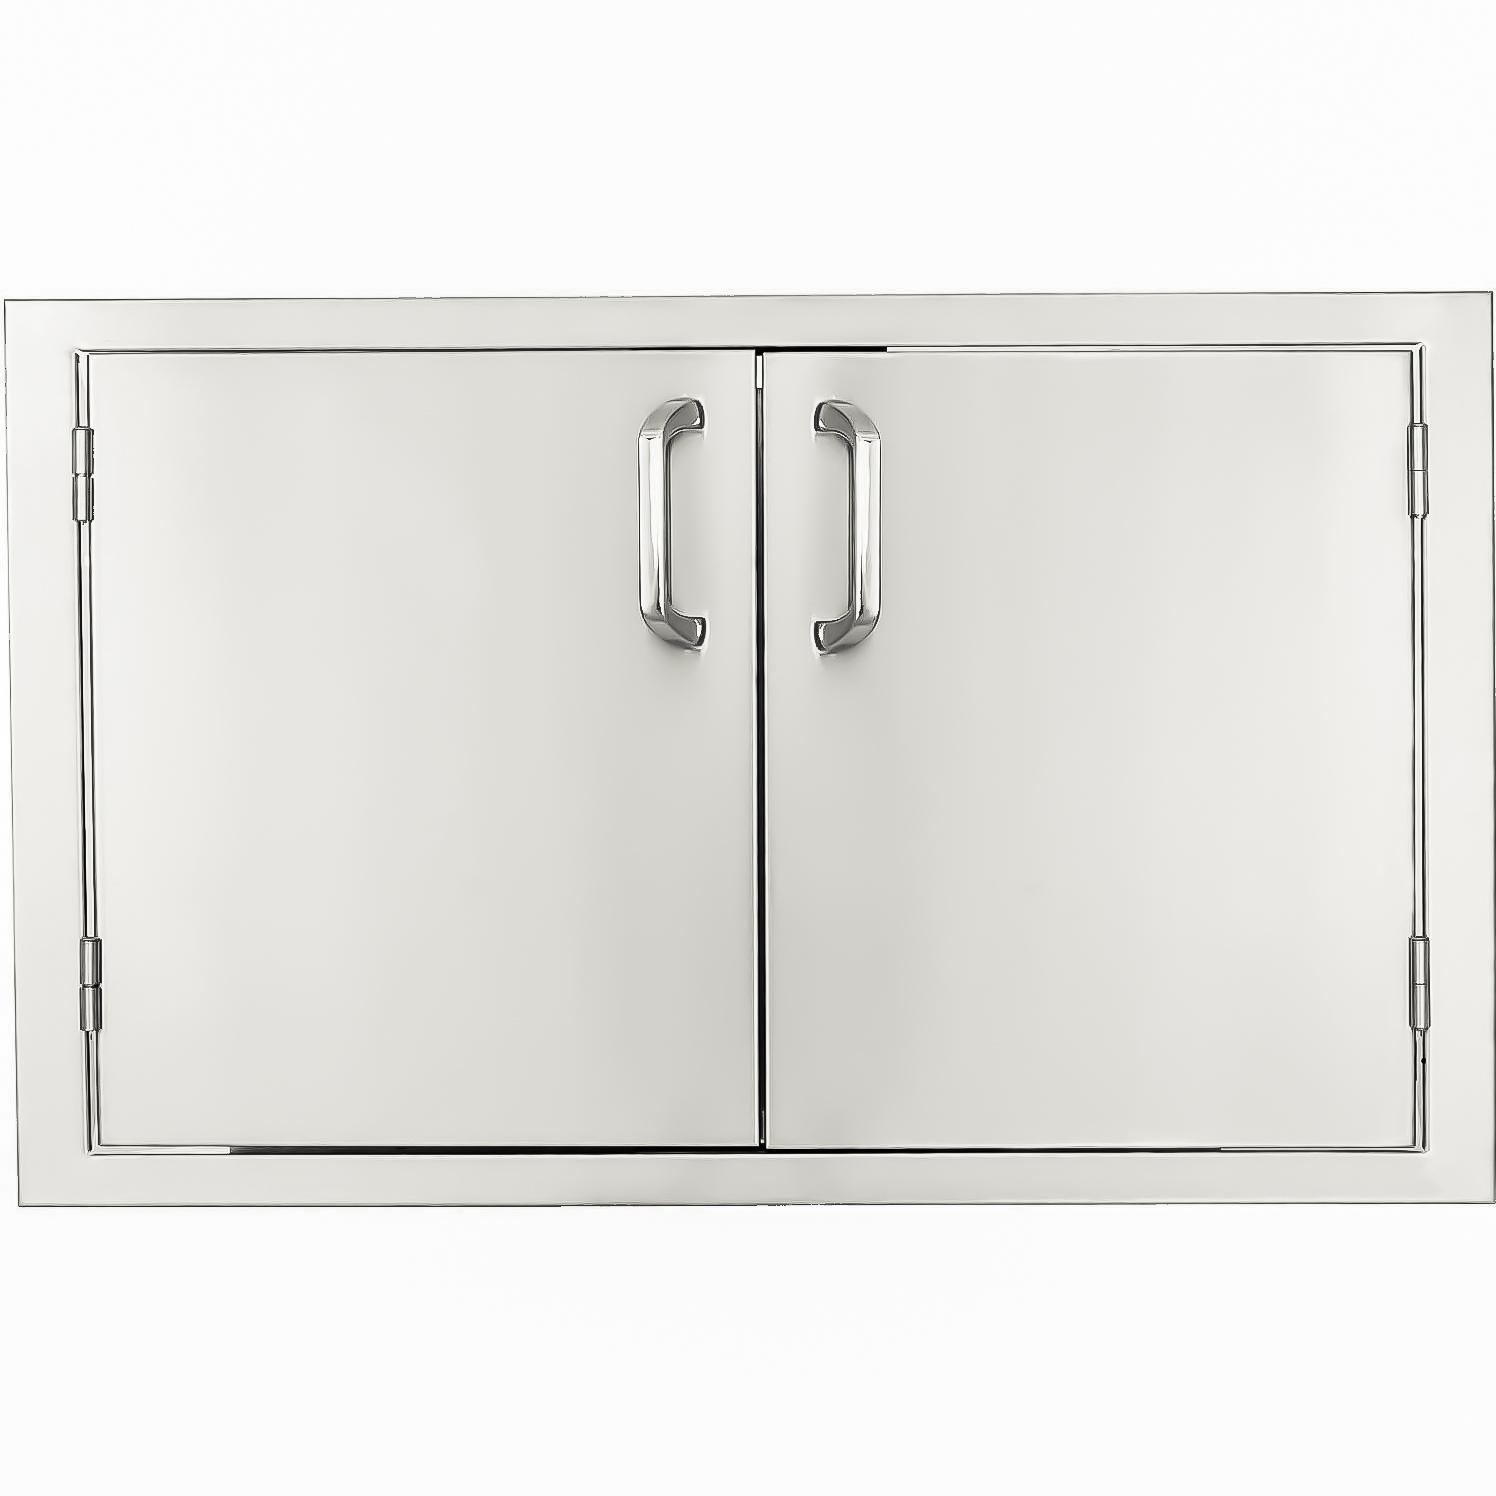 Bbqguys Kingston Series 27 Stainless Steel Double Access Door Bbq 260 27x19 In 2019 Products Build Outdoor Kitchen Outdoor Kitchen Cabinets Outdoor Ki